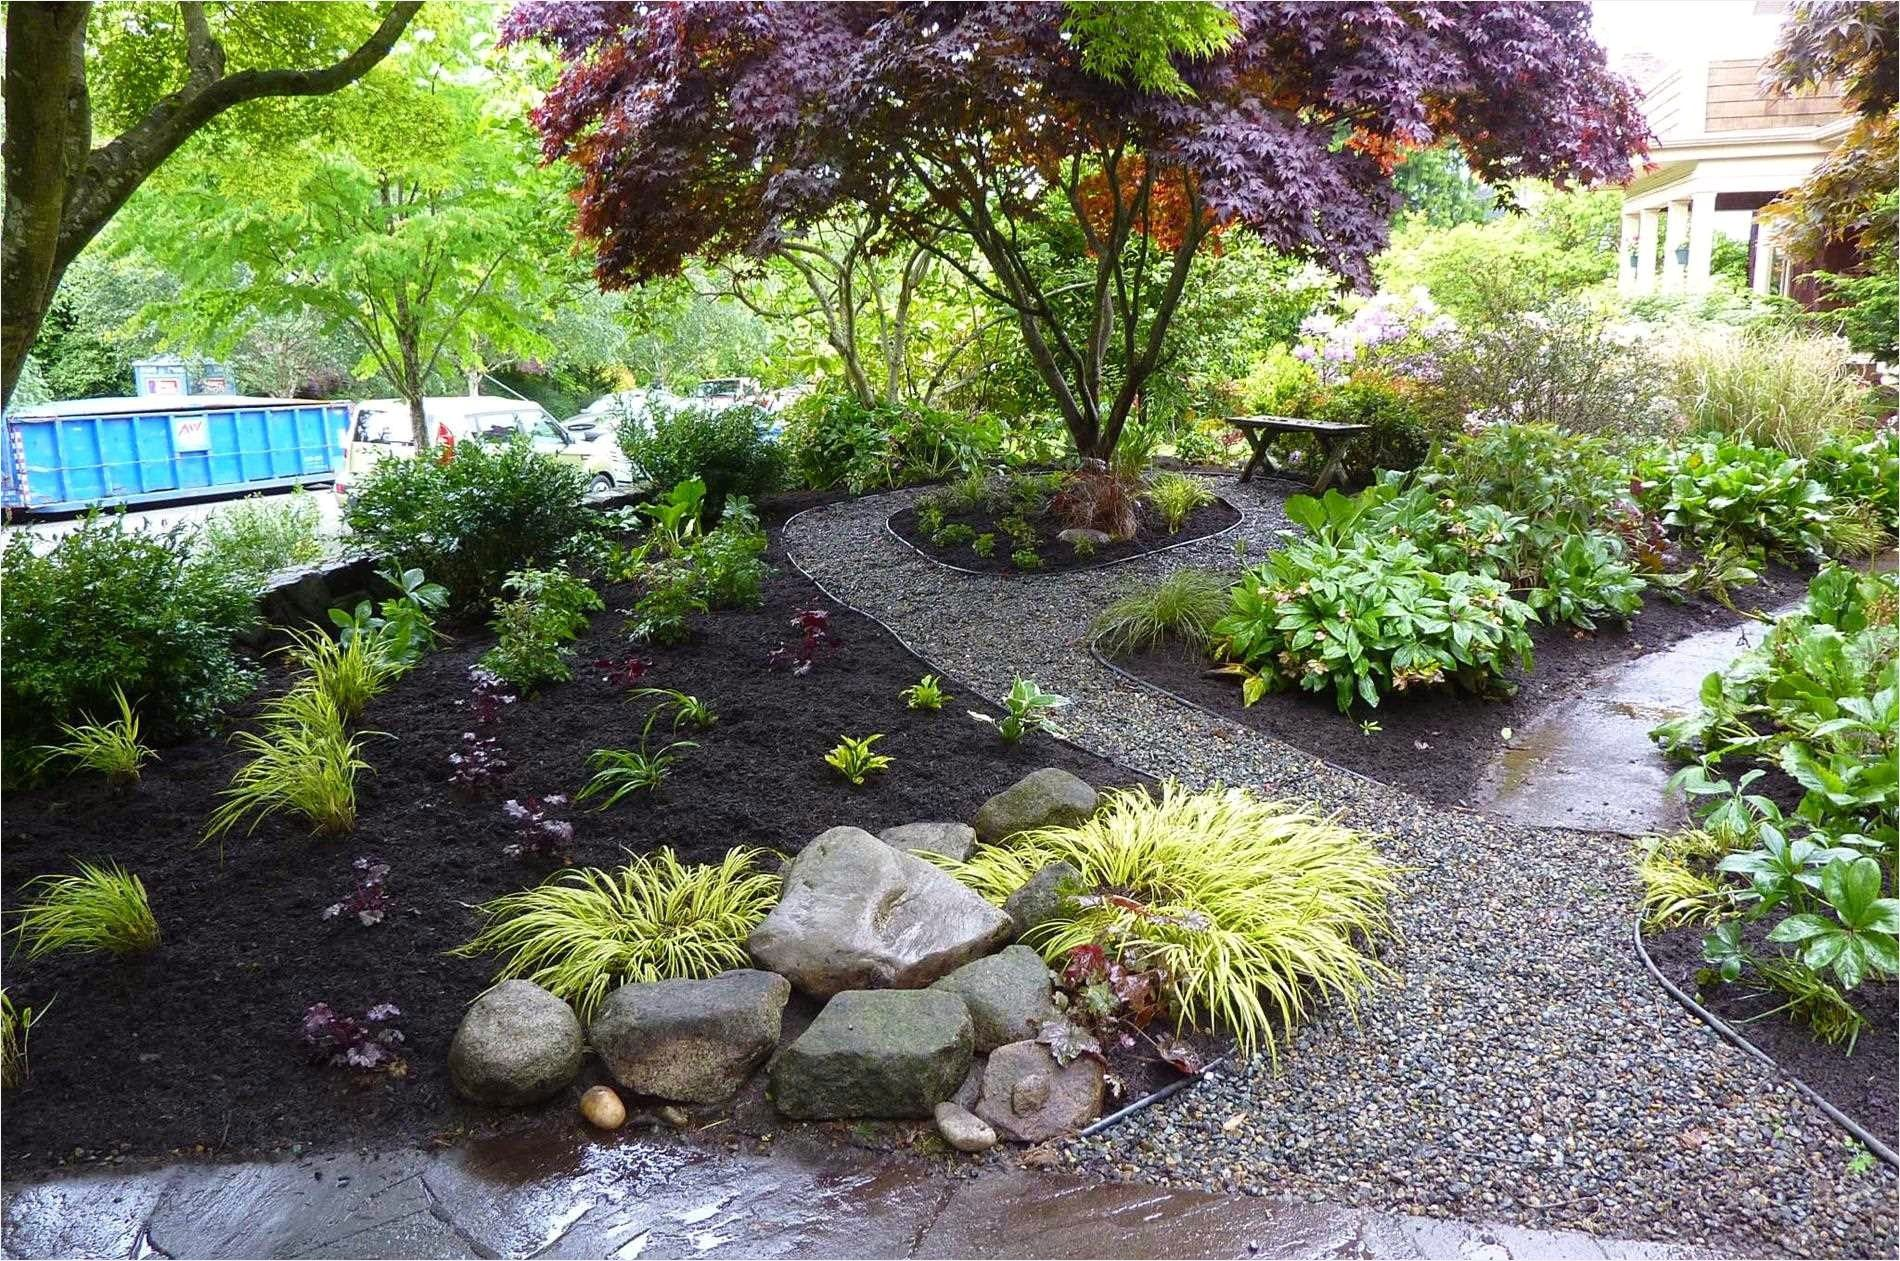 41 Adorable No Lawn Front Yard Landscaping That Will ... on No Lawn Garden Ideas  id=52782